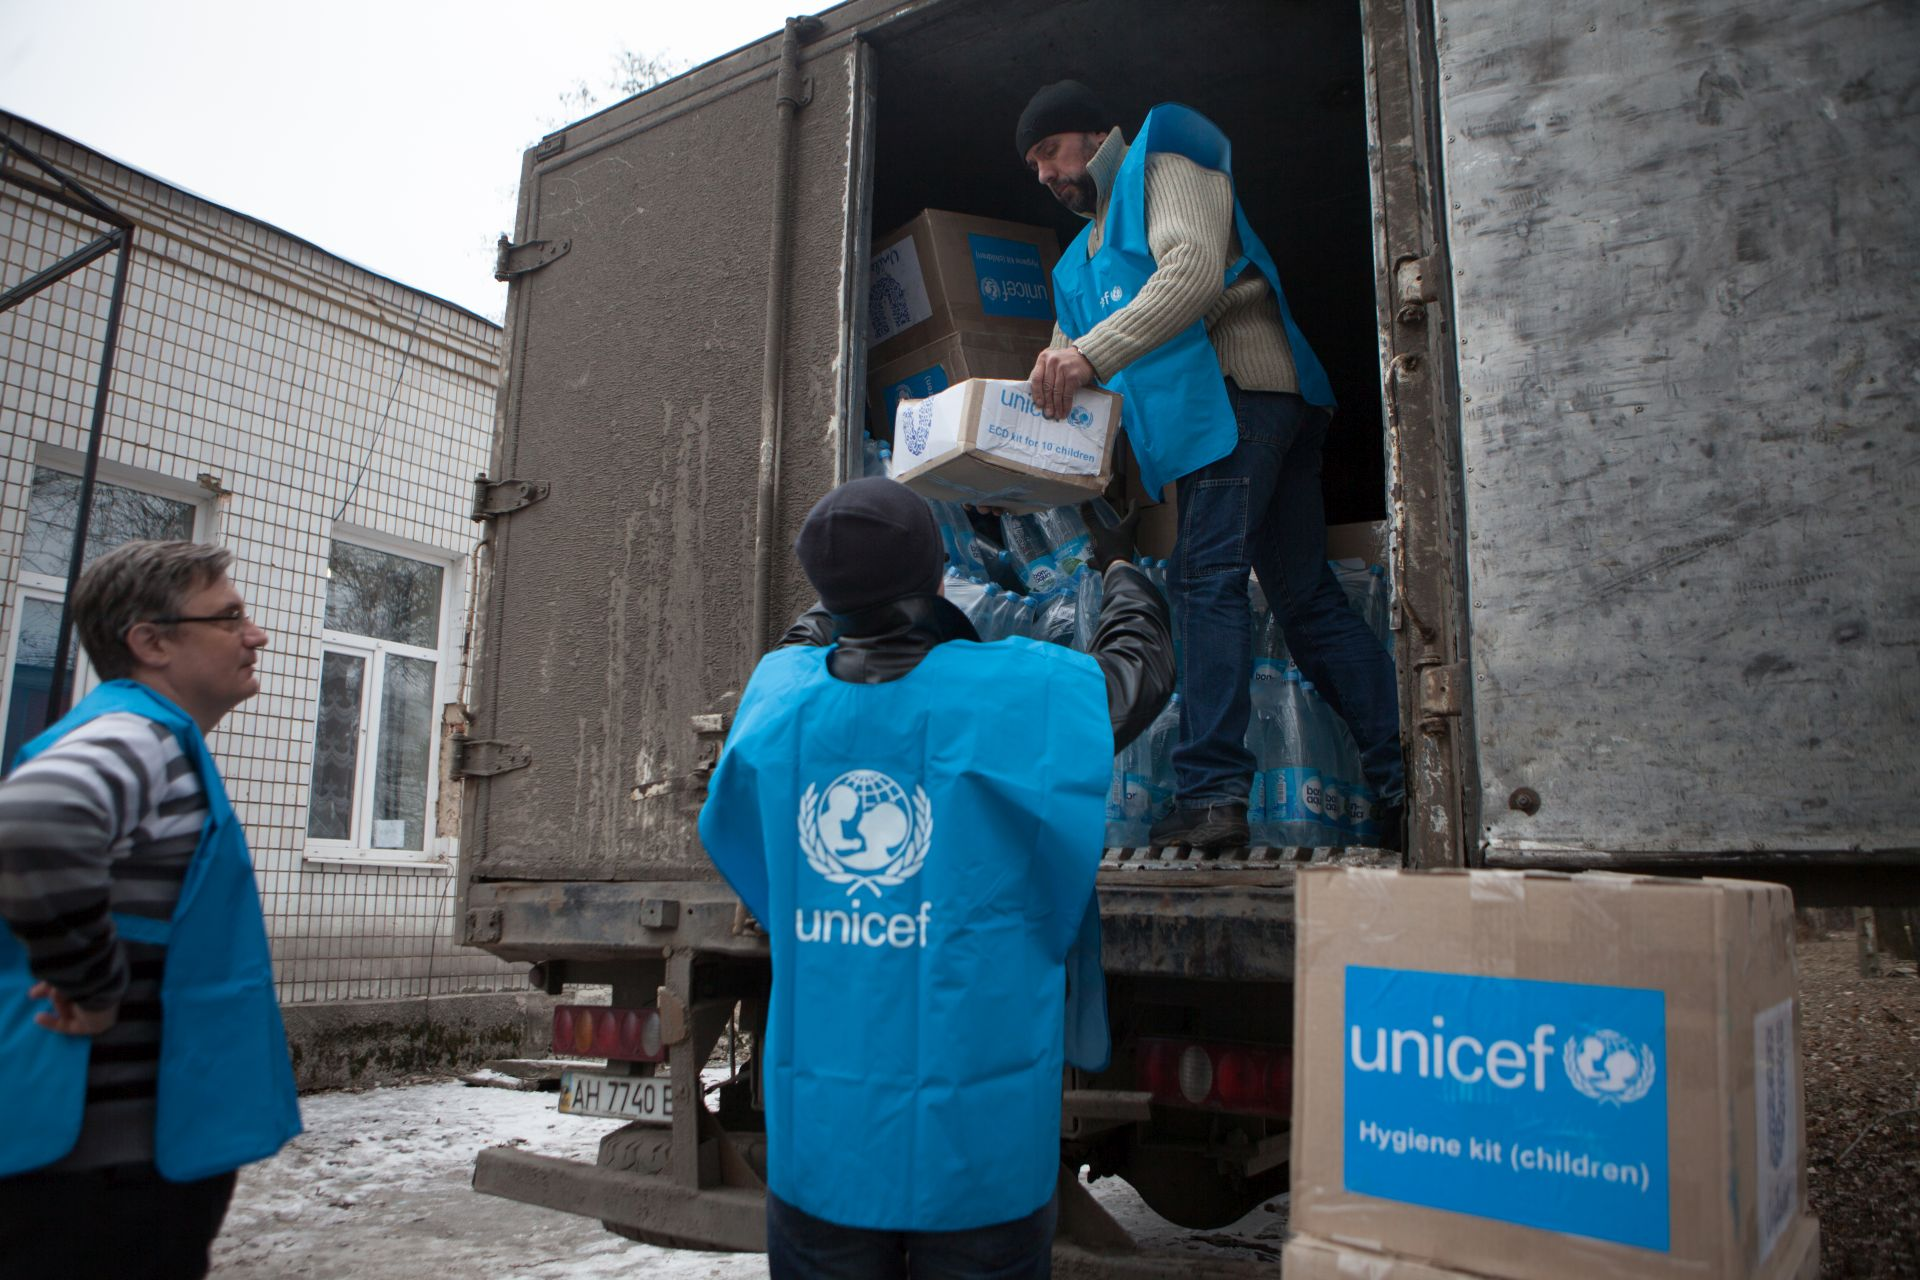 Unloading and distribution of humanitarian supplies from #UNICEF in the hospital number 4, #Donetsk.